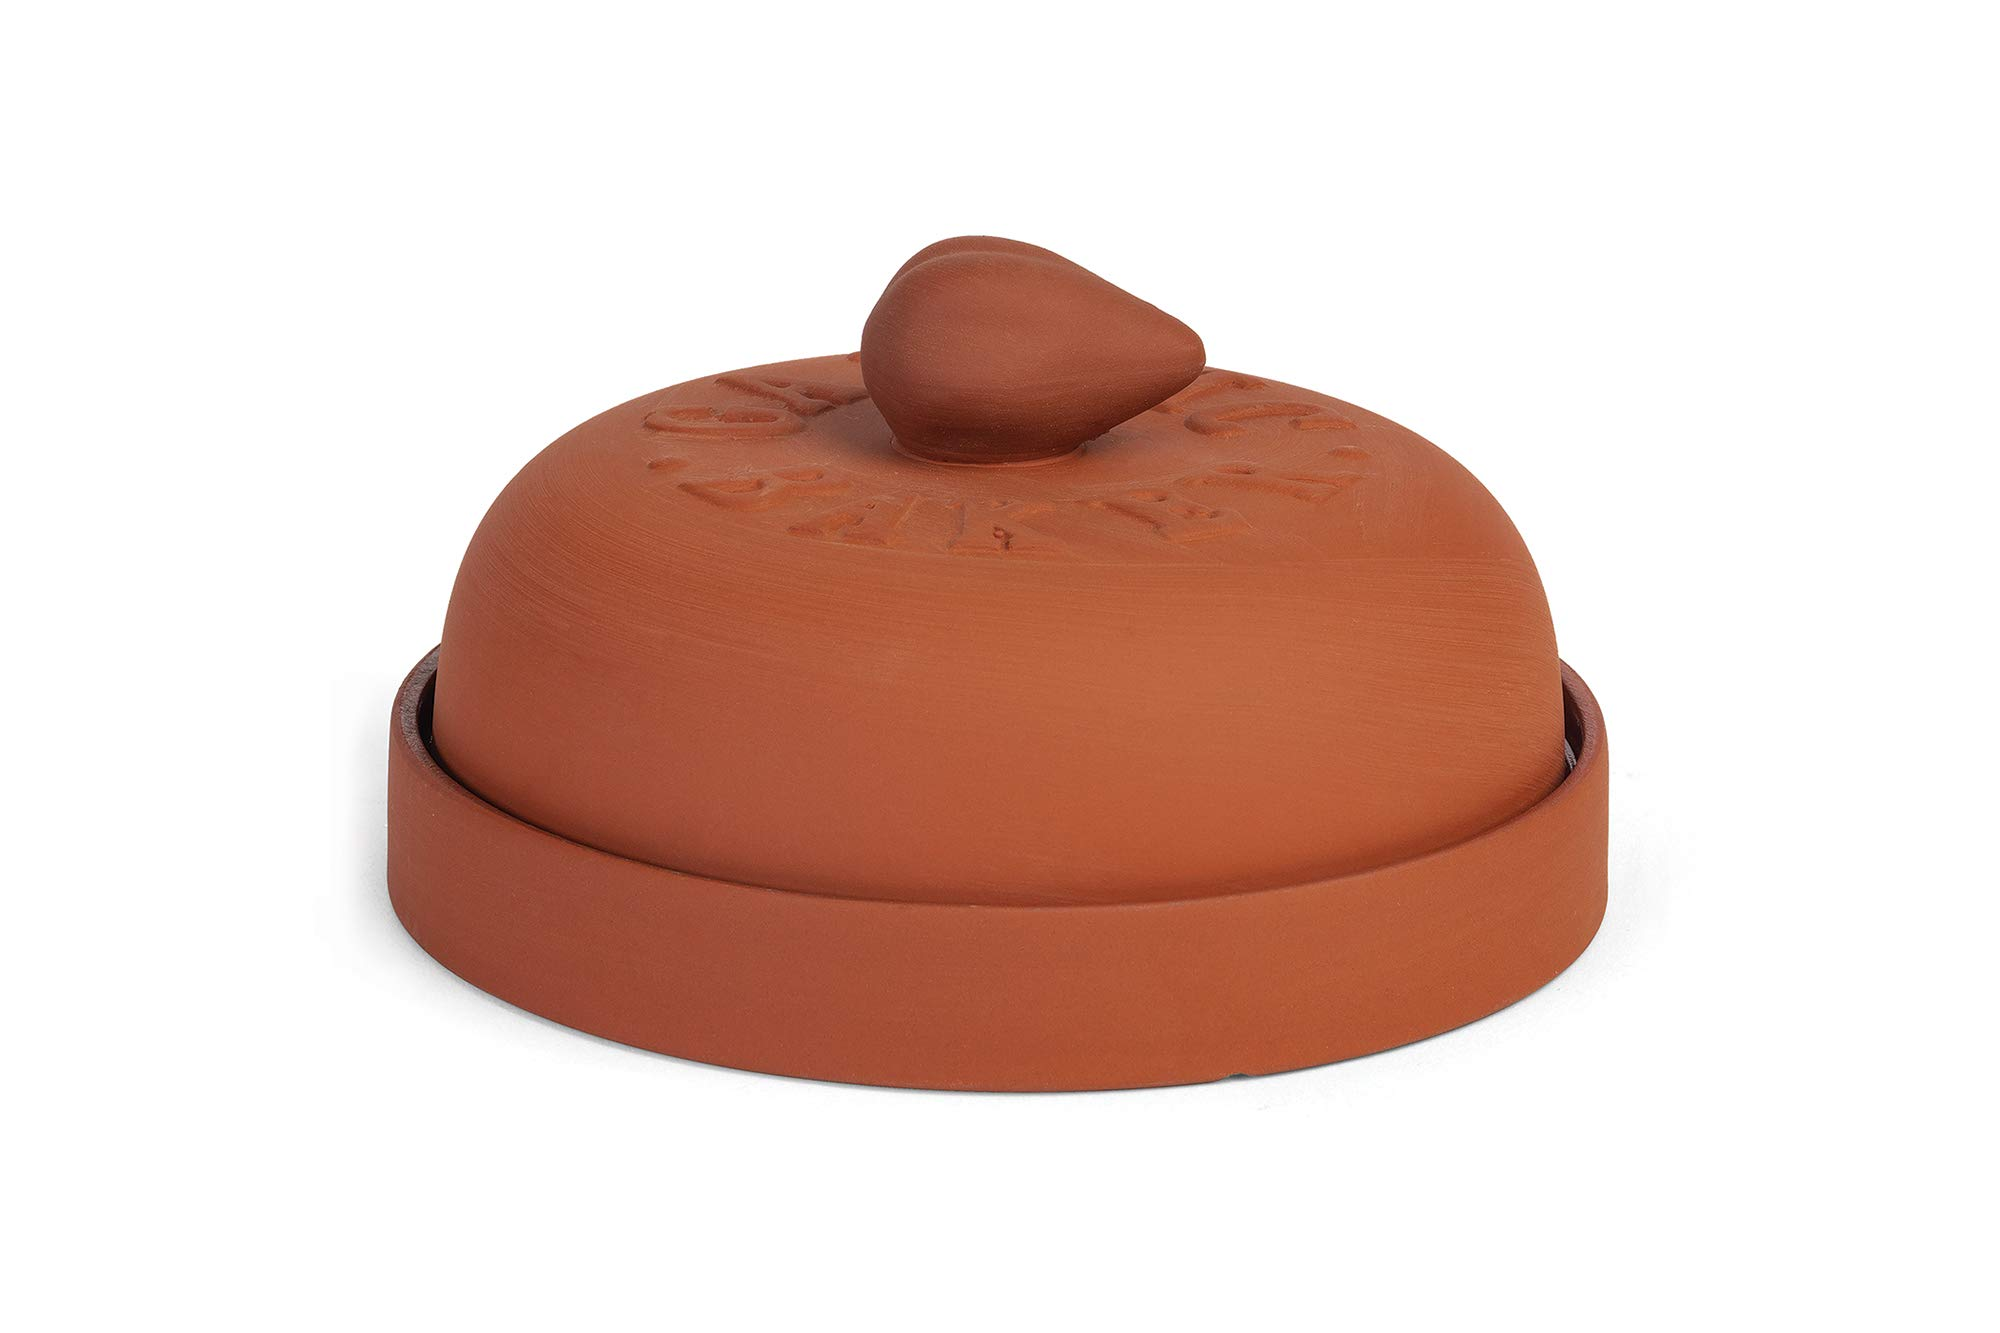 Fox Run 3921 Garlic Baker, 7-Inch, Terra Cotta by Fox Run